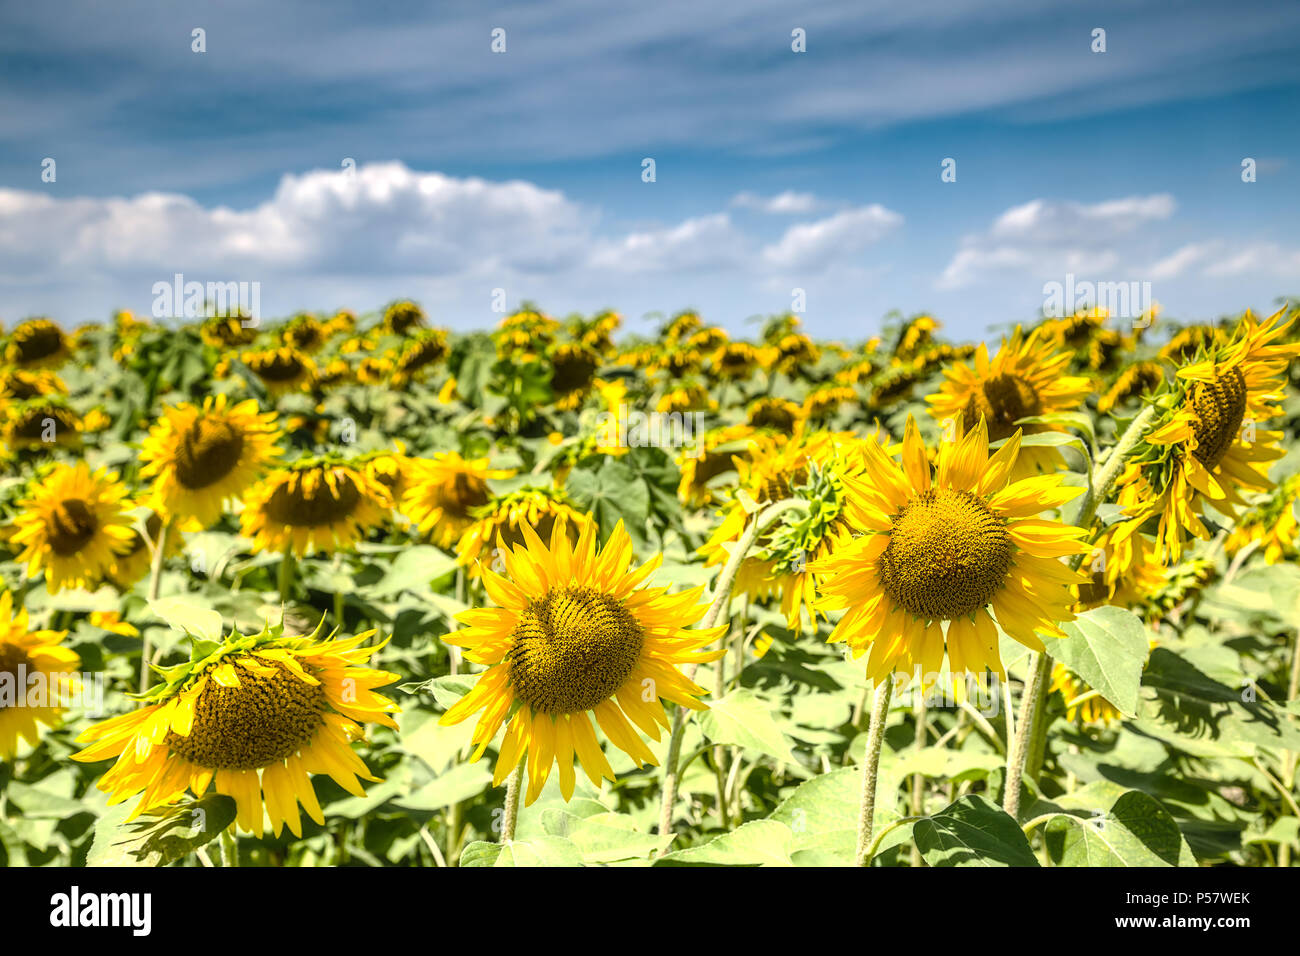 Fine sunny weather with some clouds on a blue sky and a sunflower field. Beautiful agricultural background. - Stock Image